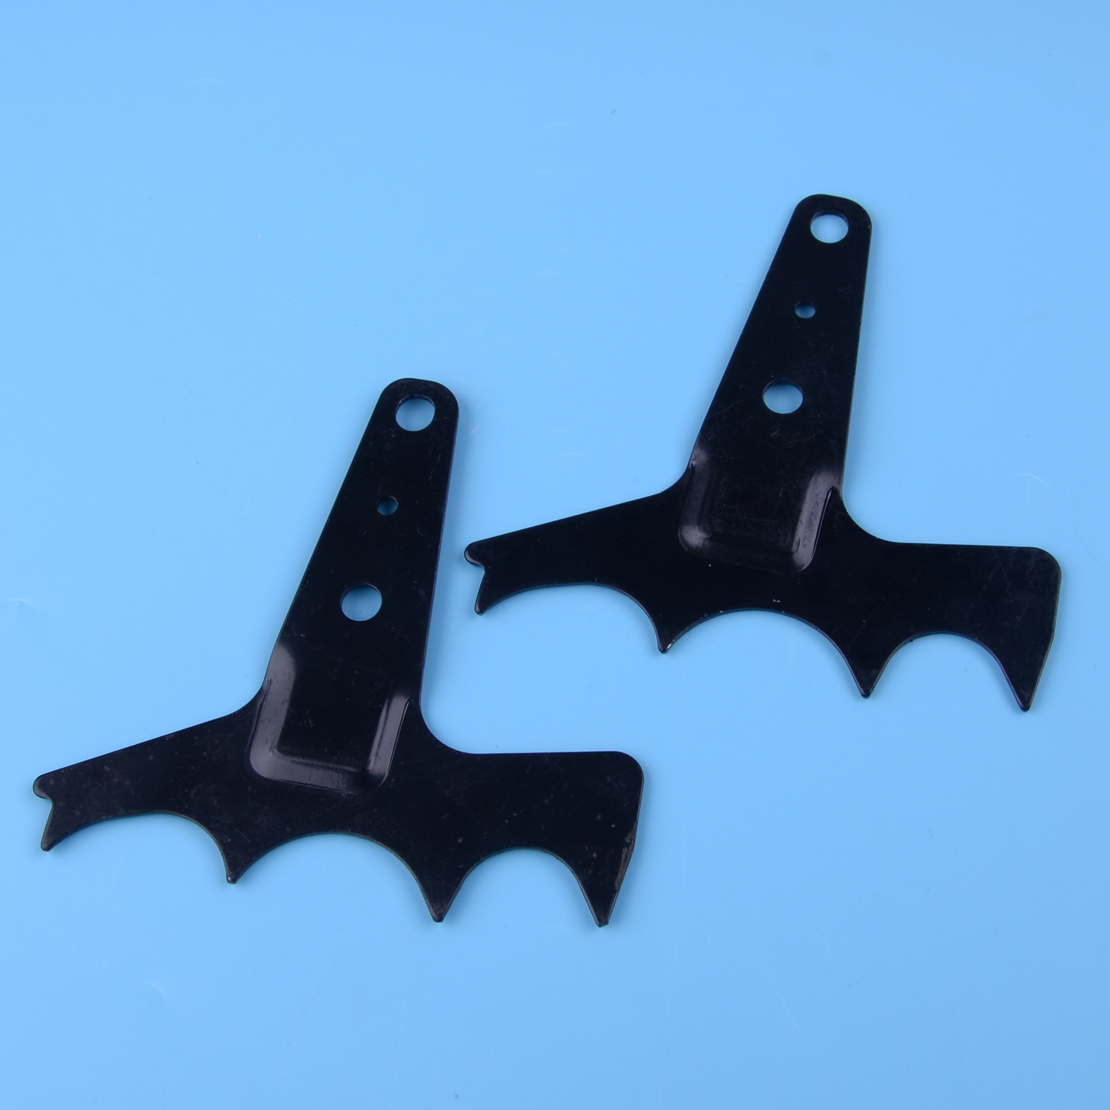 LETAOSK 2pcs Steel Felling Dog Bumper Spike Fit For Husqvarna 362 365 372 575 385 390 Chainsaw Spare Parts